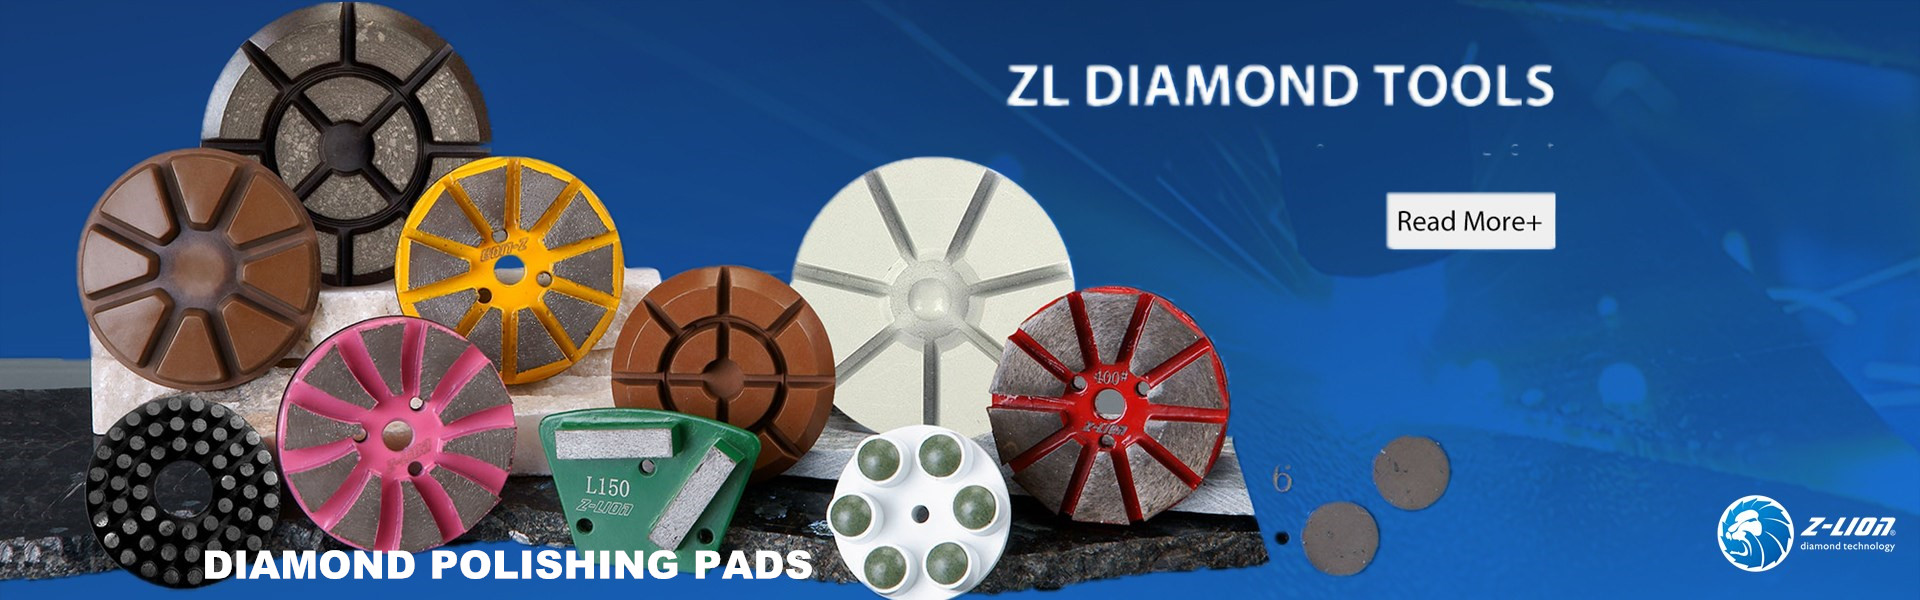 Z-Lion Diamond Tools Group